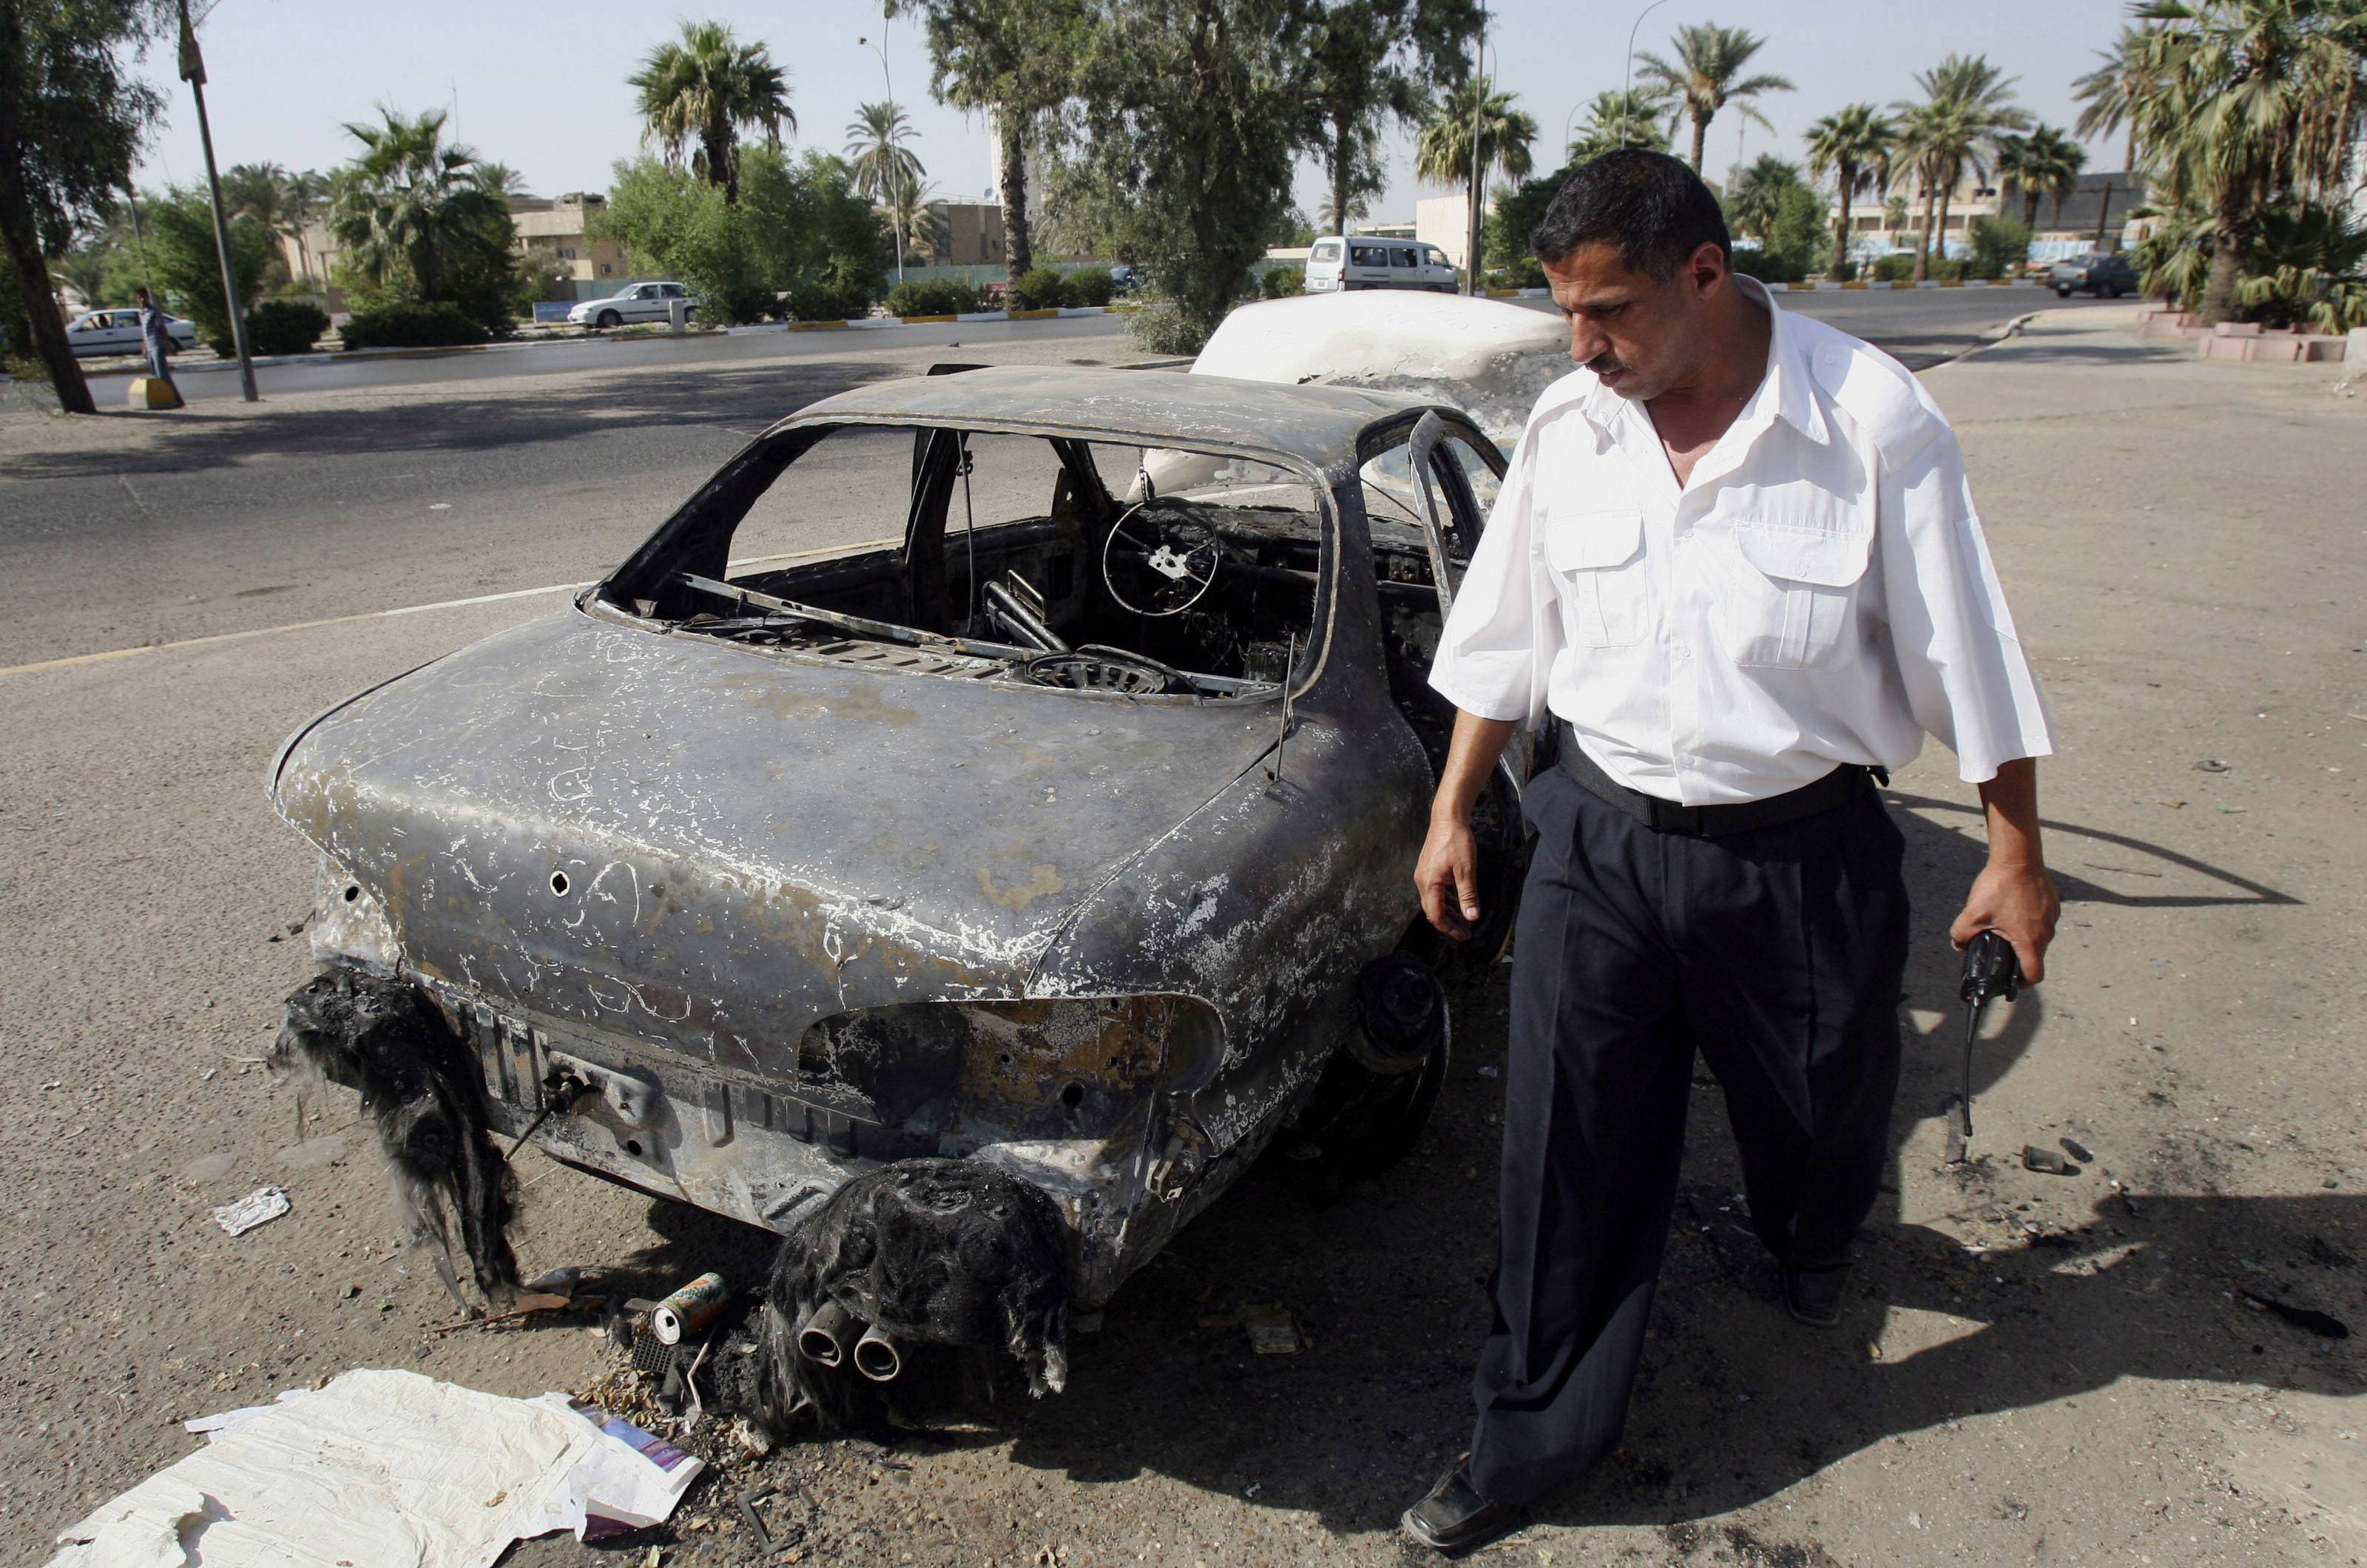 This Sept. 25, 2007 file photo shows an Iraqi traffic policeman inspects a car destroyed by a Blackwater security detail in al-Nisoor Square in Baghdad, Iraq. After years of delays, four former guards from the security firm Blackwater Worldwide are facing trial in the killings of 14 Iraqi civilians and the wounding of 18 others in bloodshed that inflamed anti-American sentiment around the globe. Whether the shootings were self-defense or an unprovoked attack, the carnage of Sept. 16, 2007 was seen by critics of the George W. Bush administration as an illustration of a war gone horribly wrong. A trial in the nearly 7-year-old case is scheduled to begin with jury selection on Wednesday, barring last-minute legal developments.